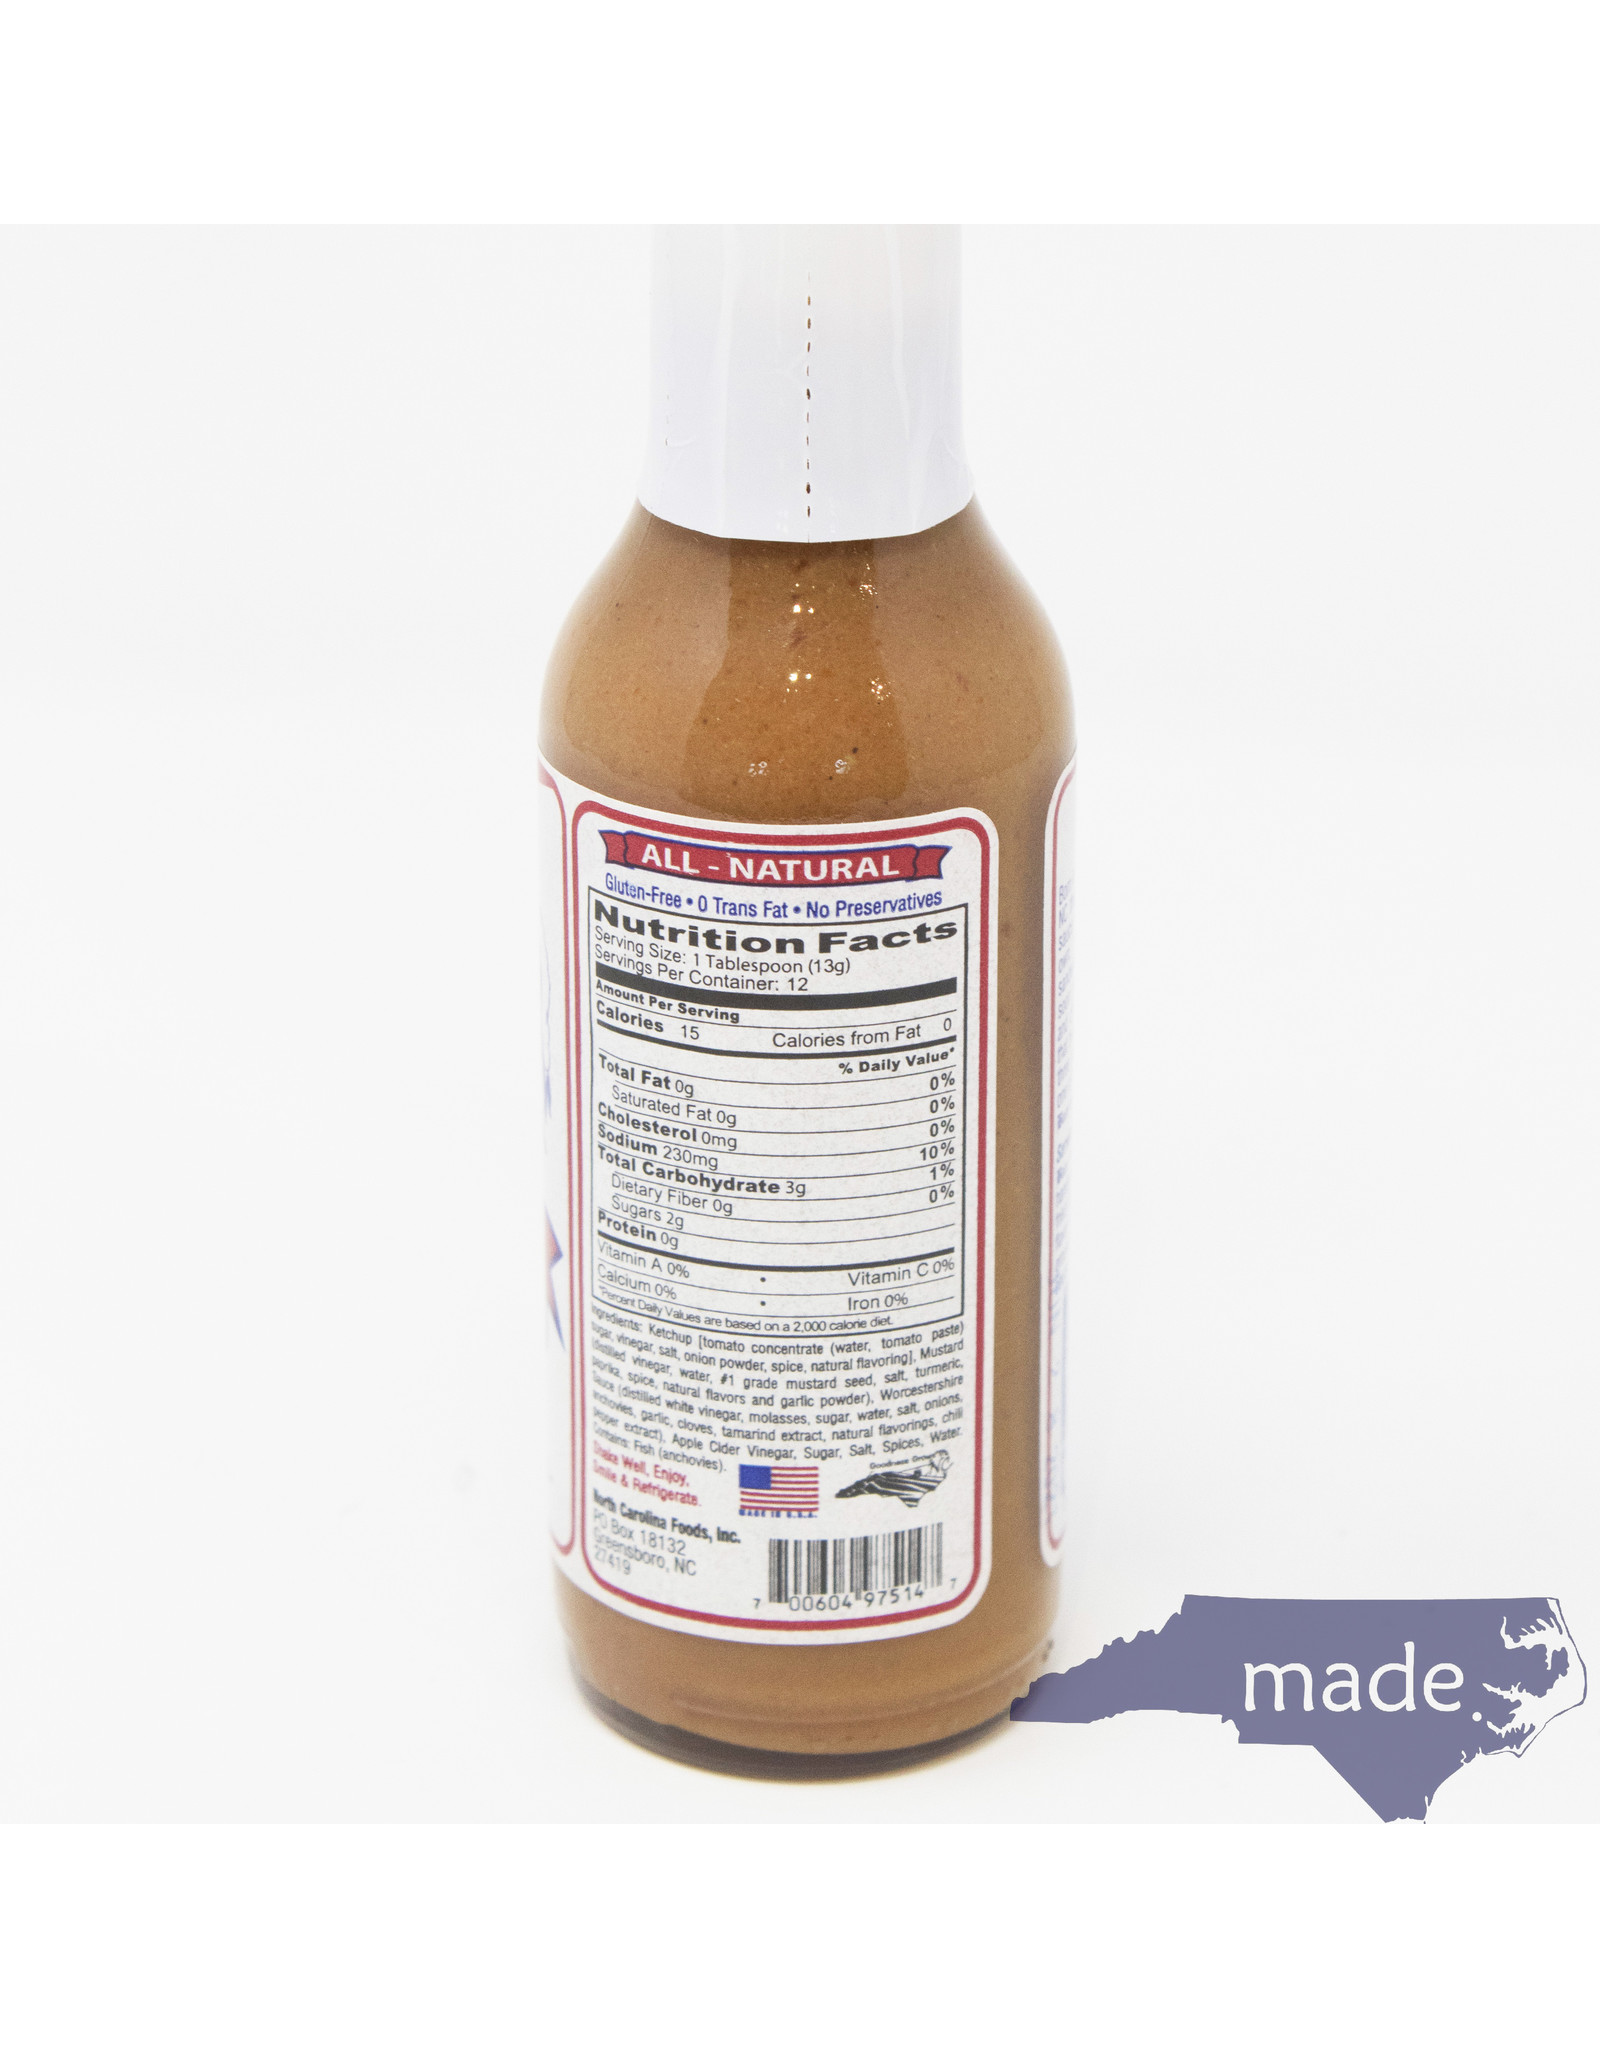 Boar and Castle Boar and Castle Sauce 6 oz. - Boar and Castle